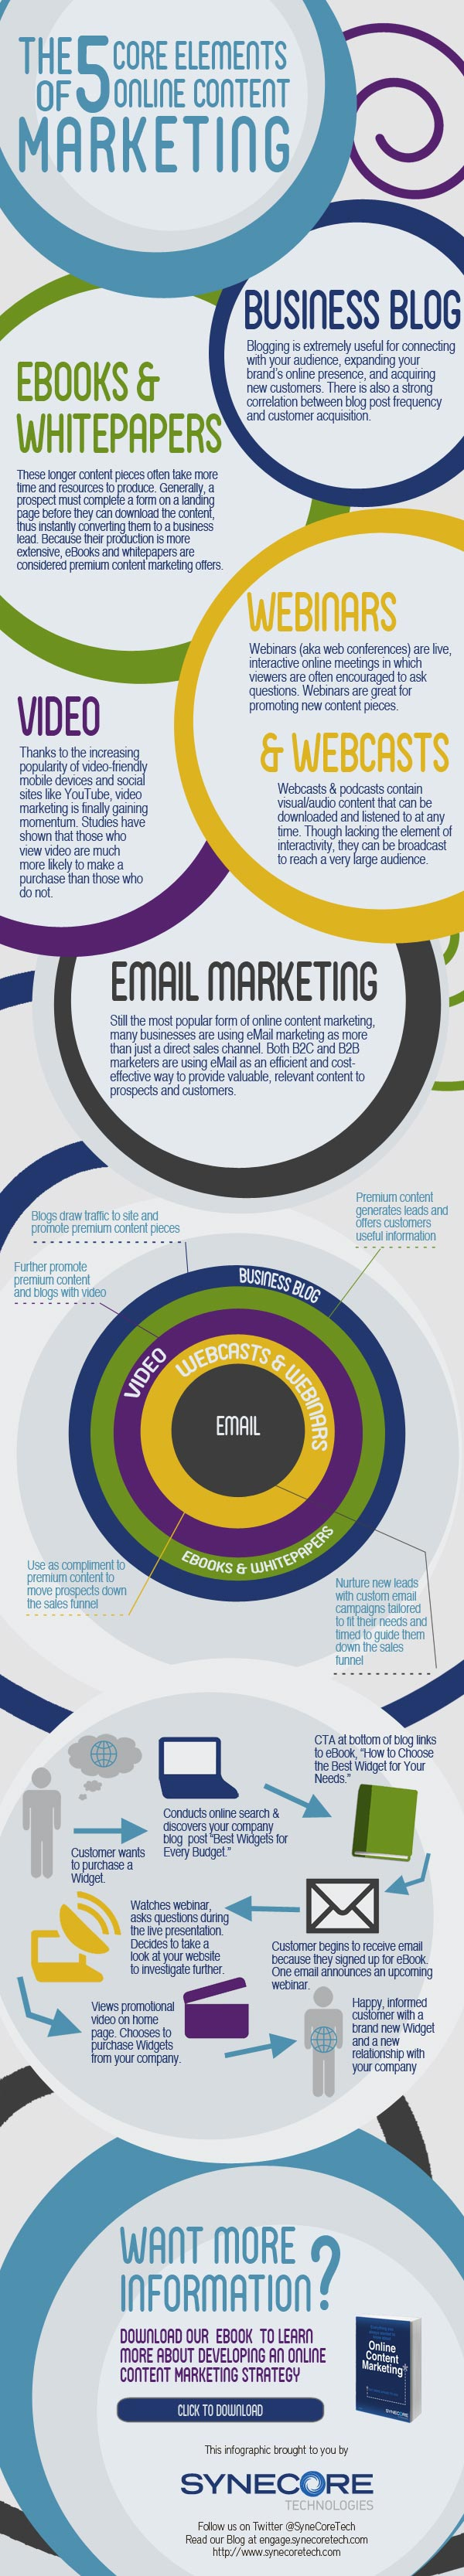 http://inblurbs.de/wp-content/uploads/2012/09/5-Elements-of-Online-Content-Marketing-Infographic.jpg